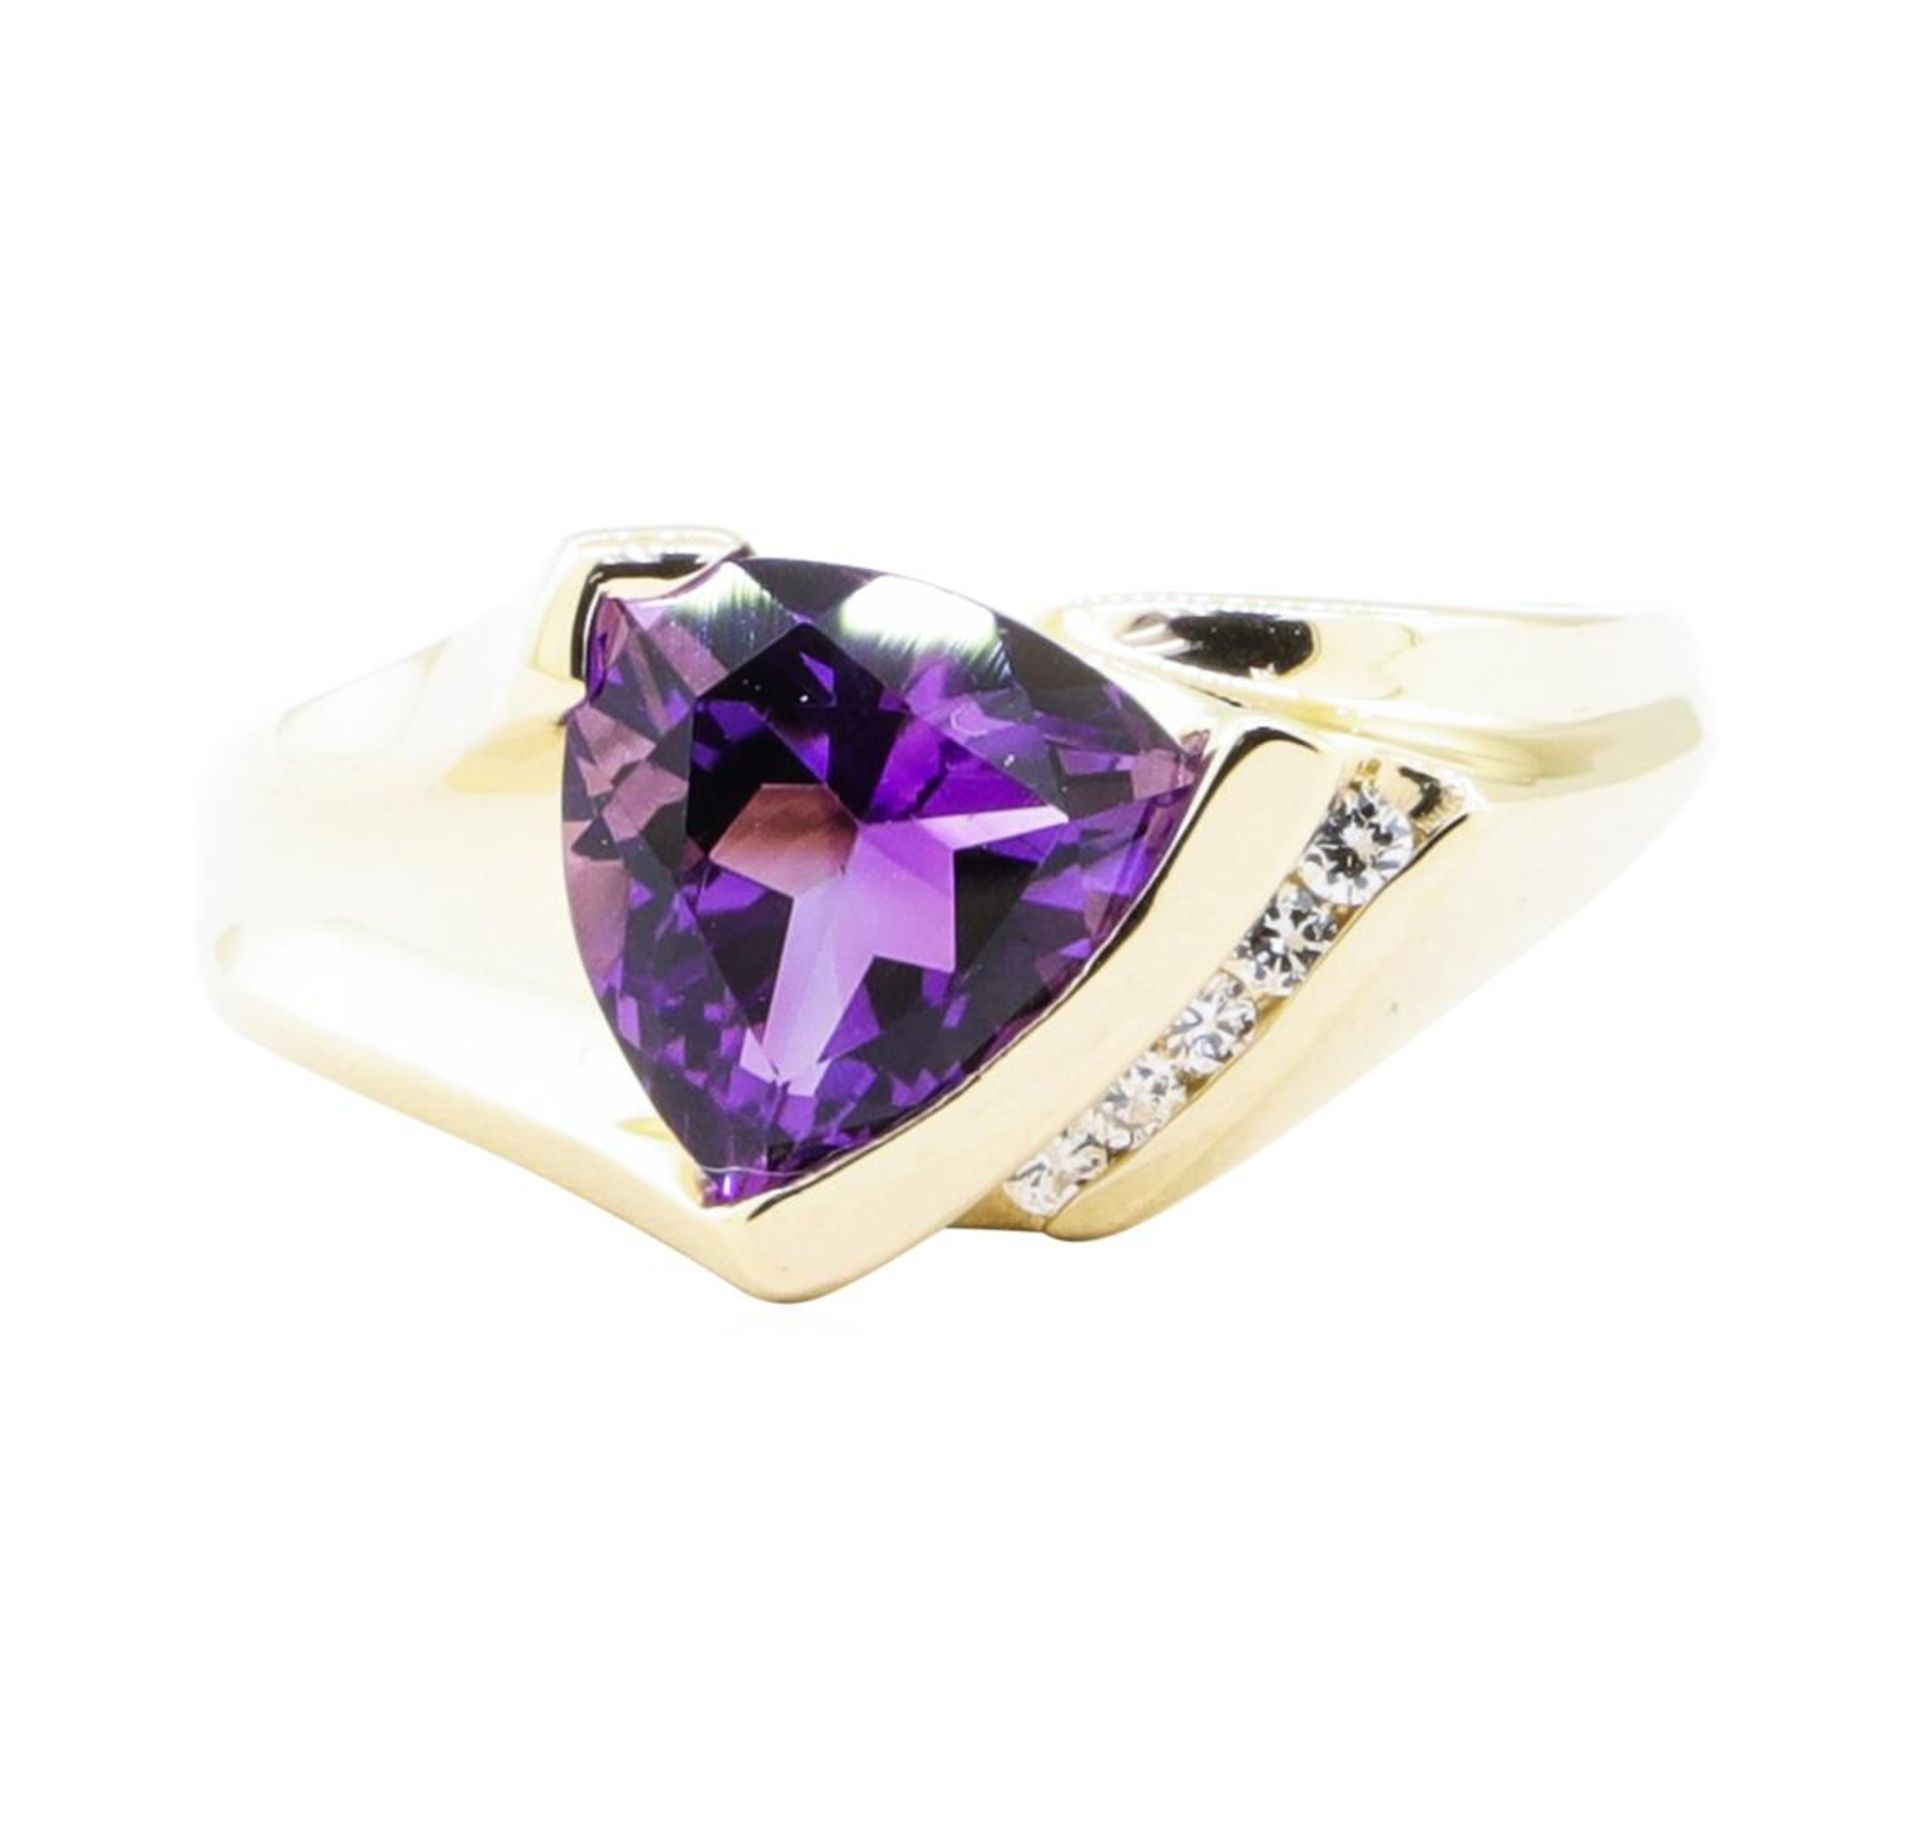 1.70 ctw Amethyst and Diamond Ring - 14KT Yellow Gold - Image 2 of 4